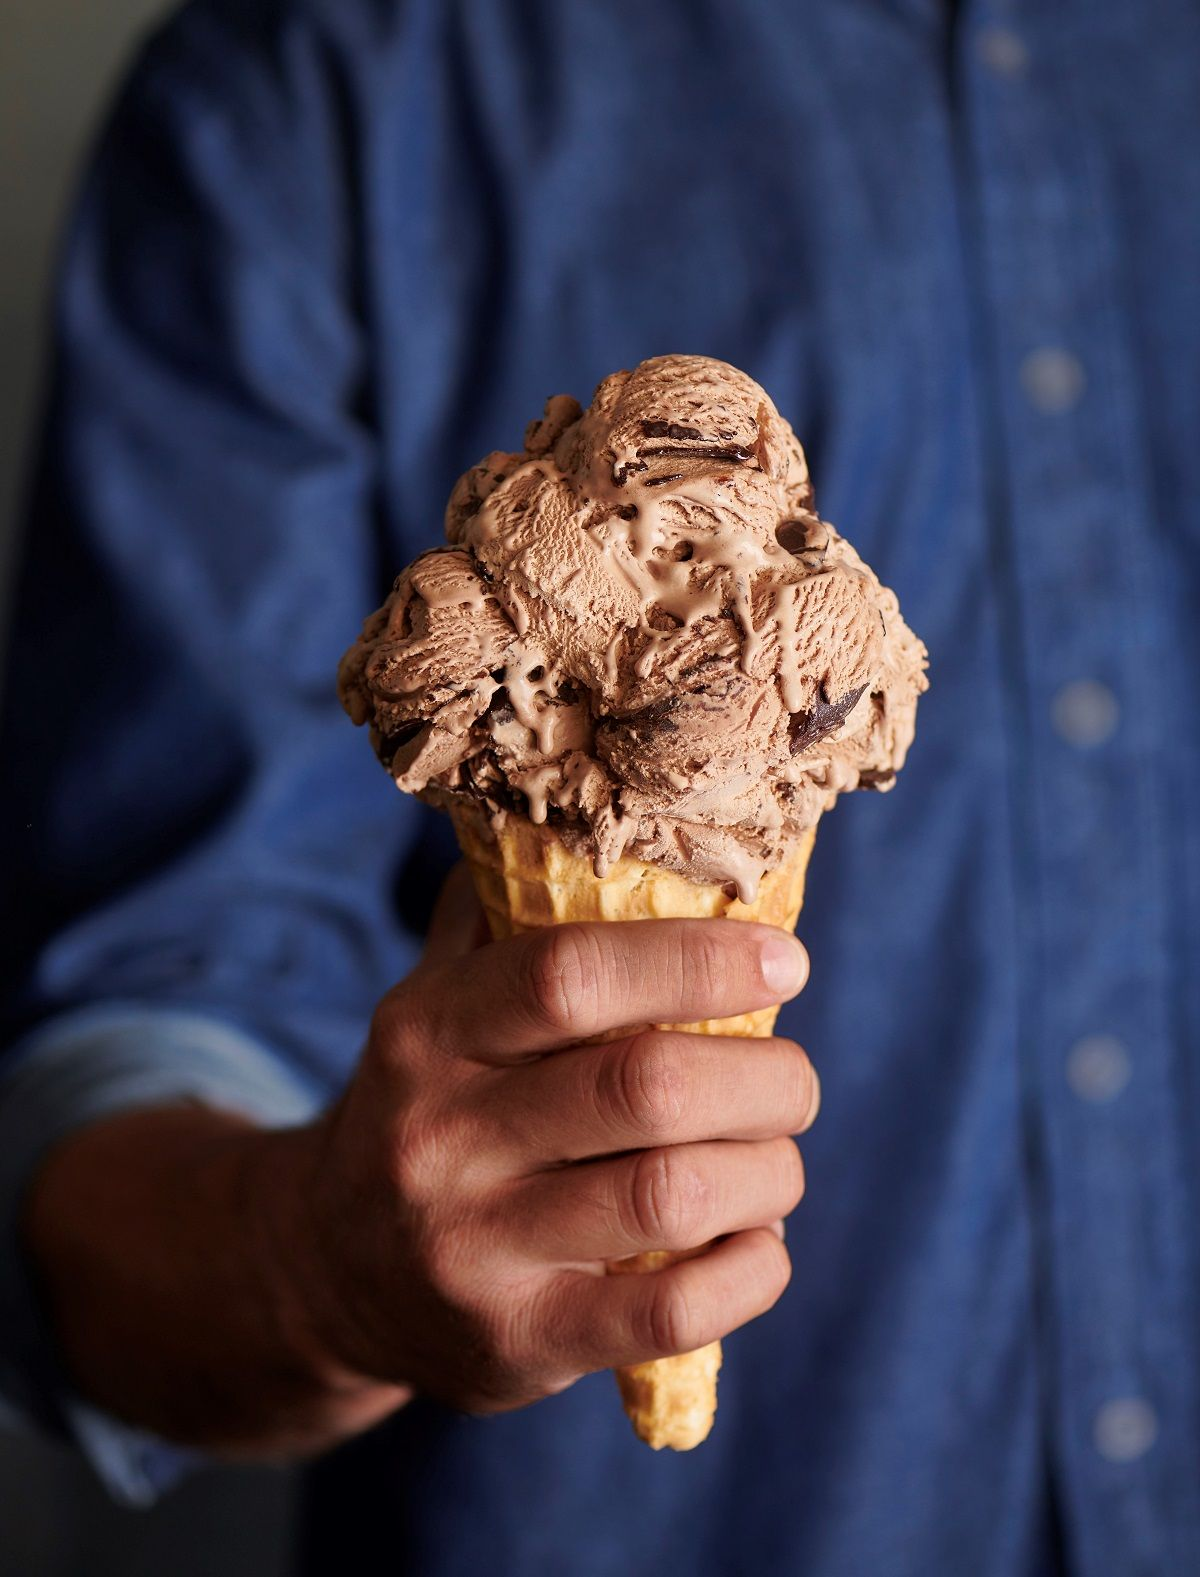 Chocolate Ice Cream Photograph